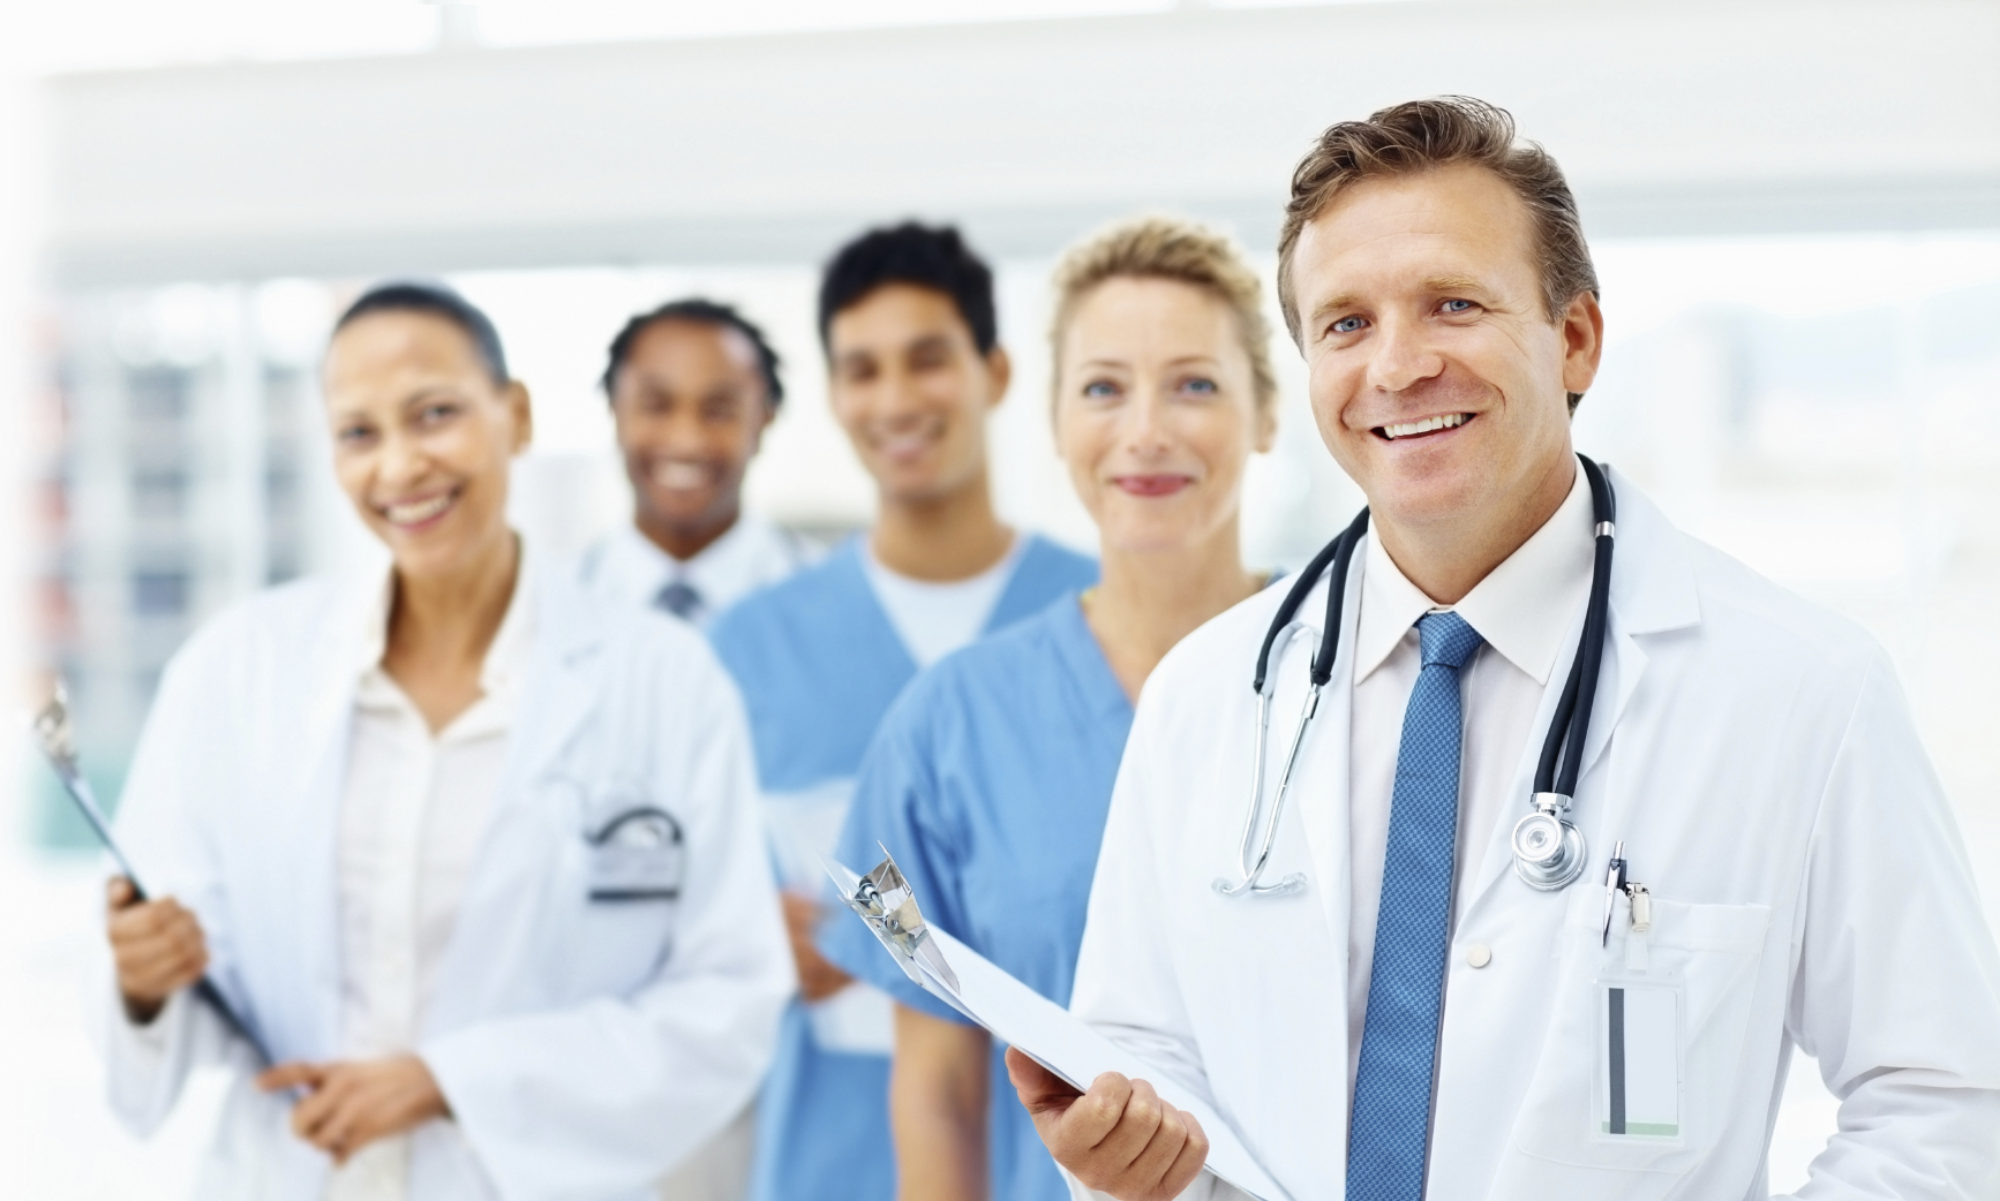 Healthcare Credentialing